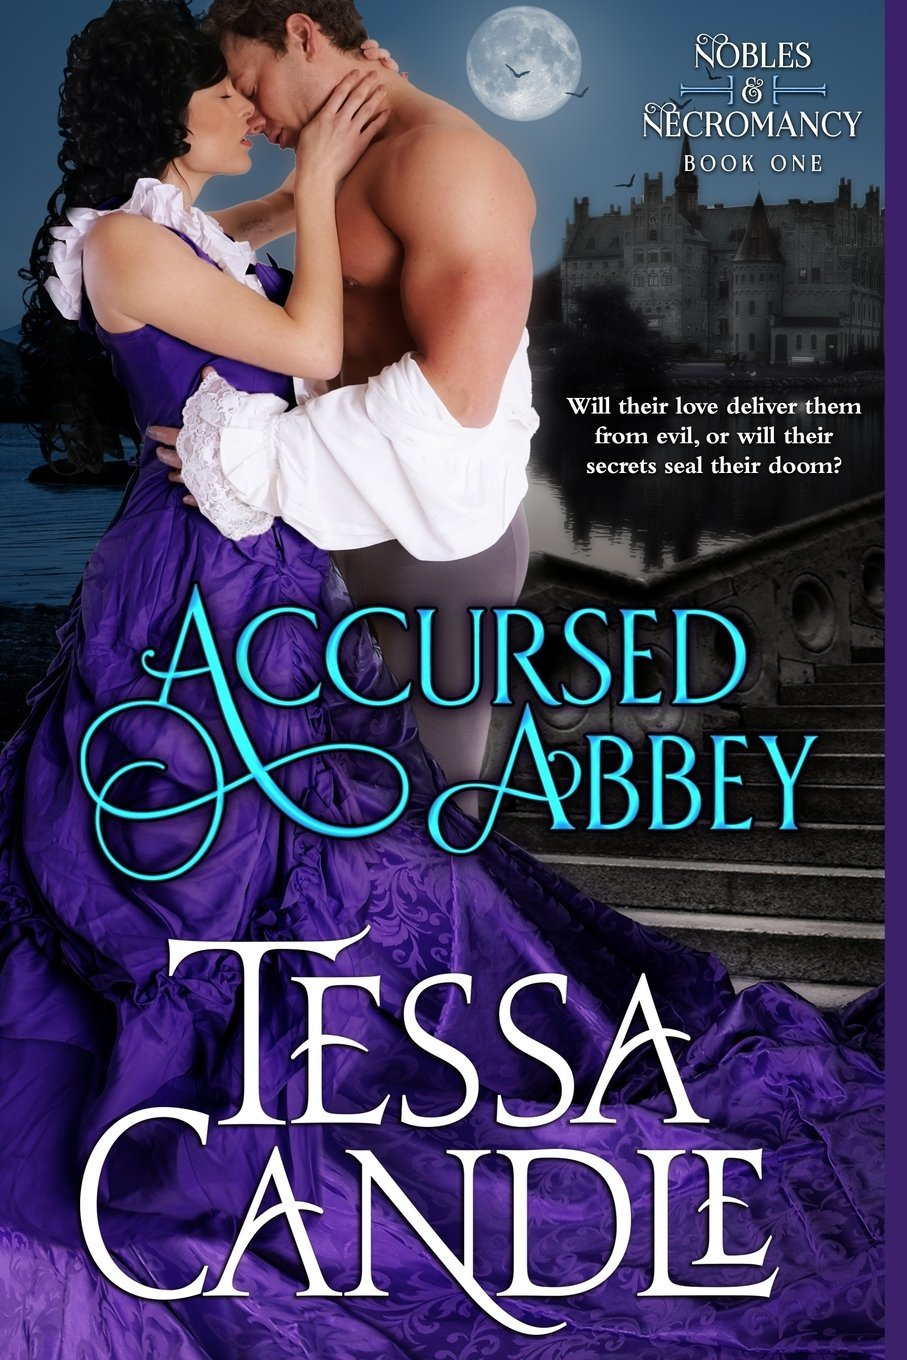 Download Accursed Abbey: A Regency Gothic Romance (Nobles & Necromancy Book 1) (Volume 1) ebook